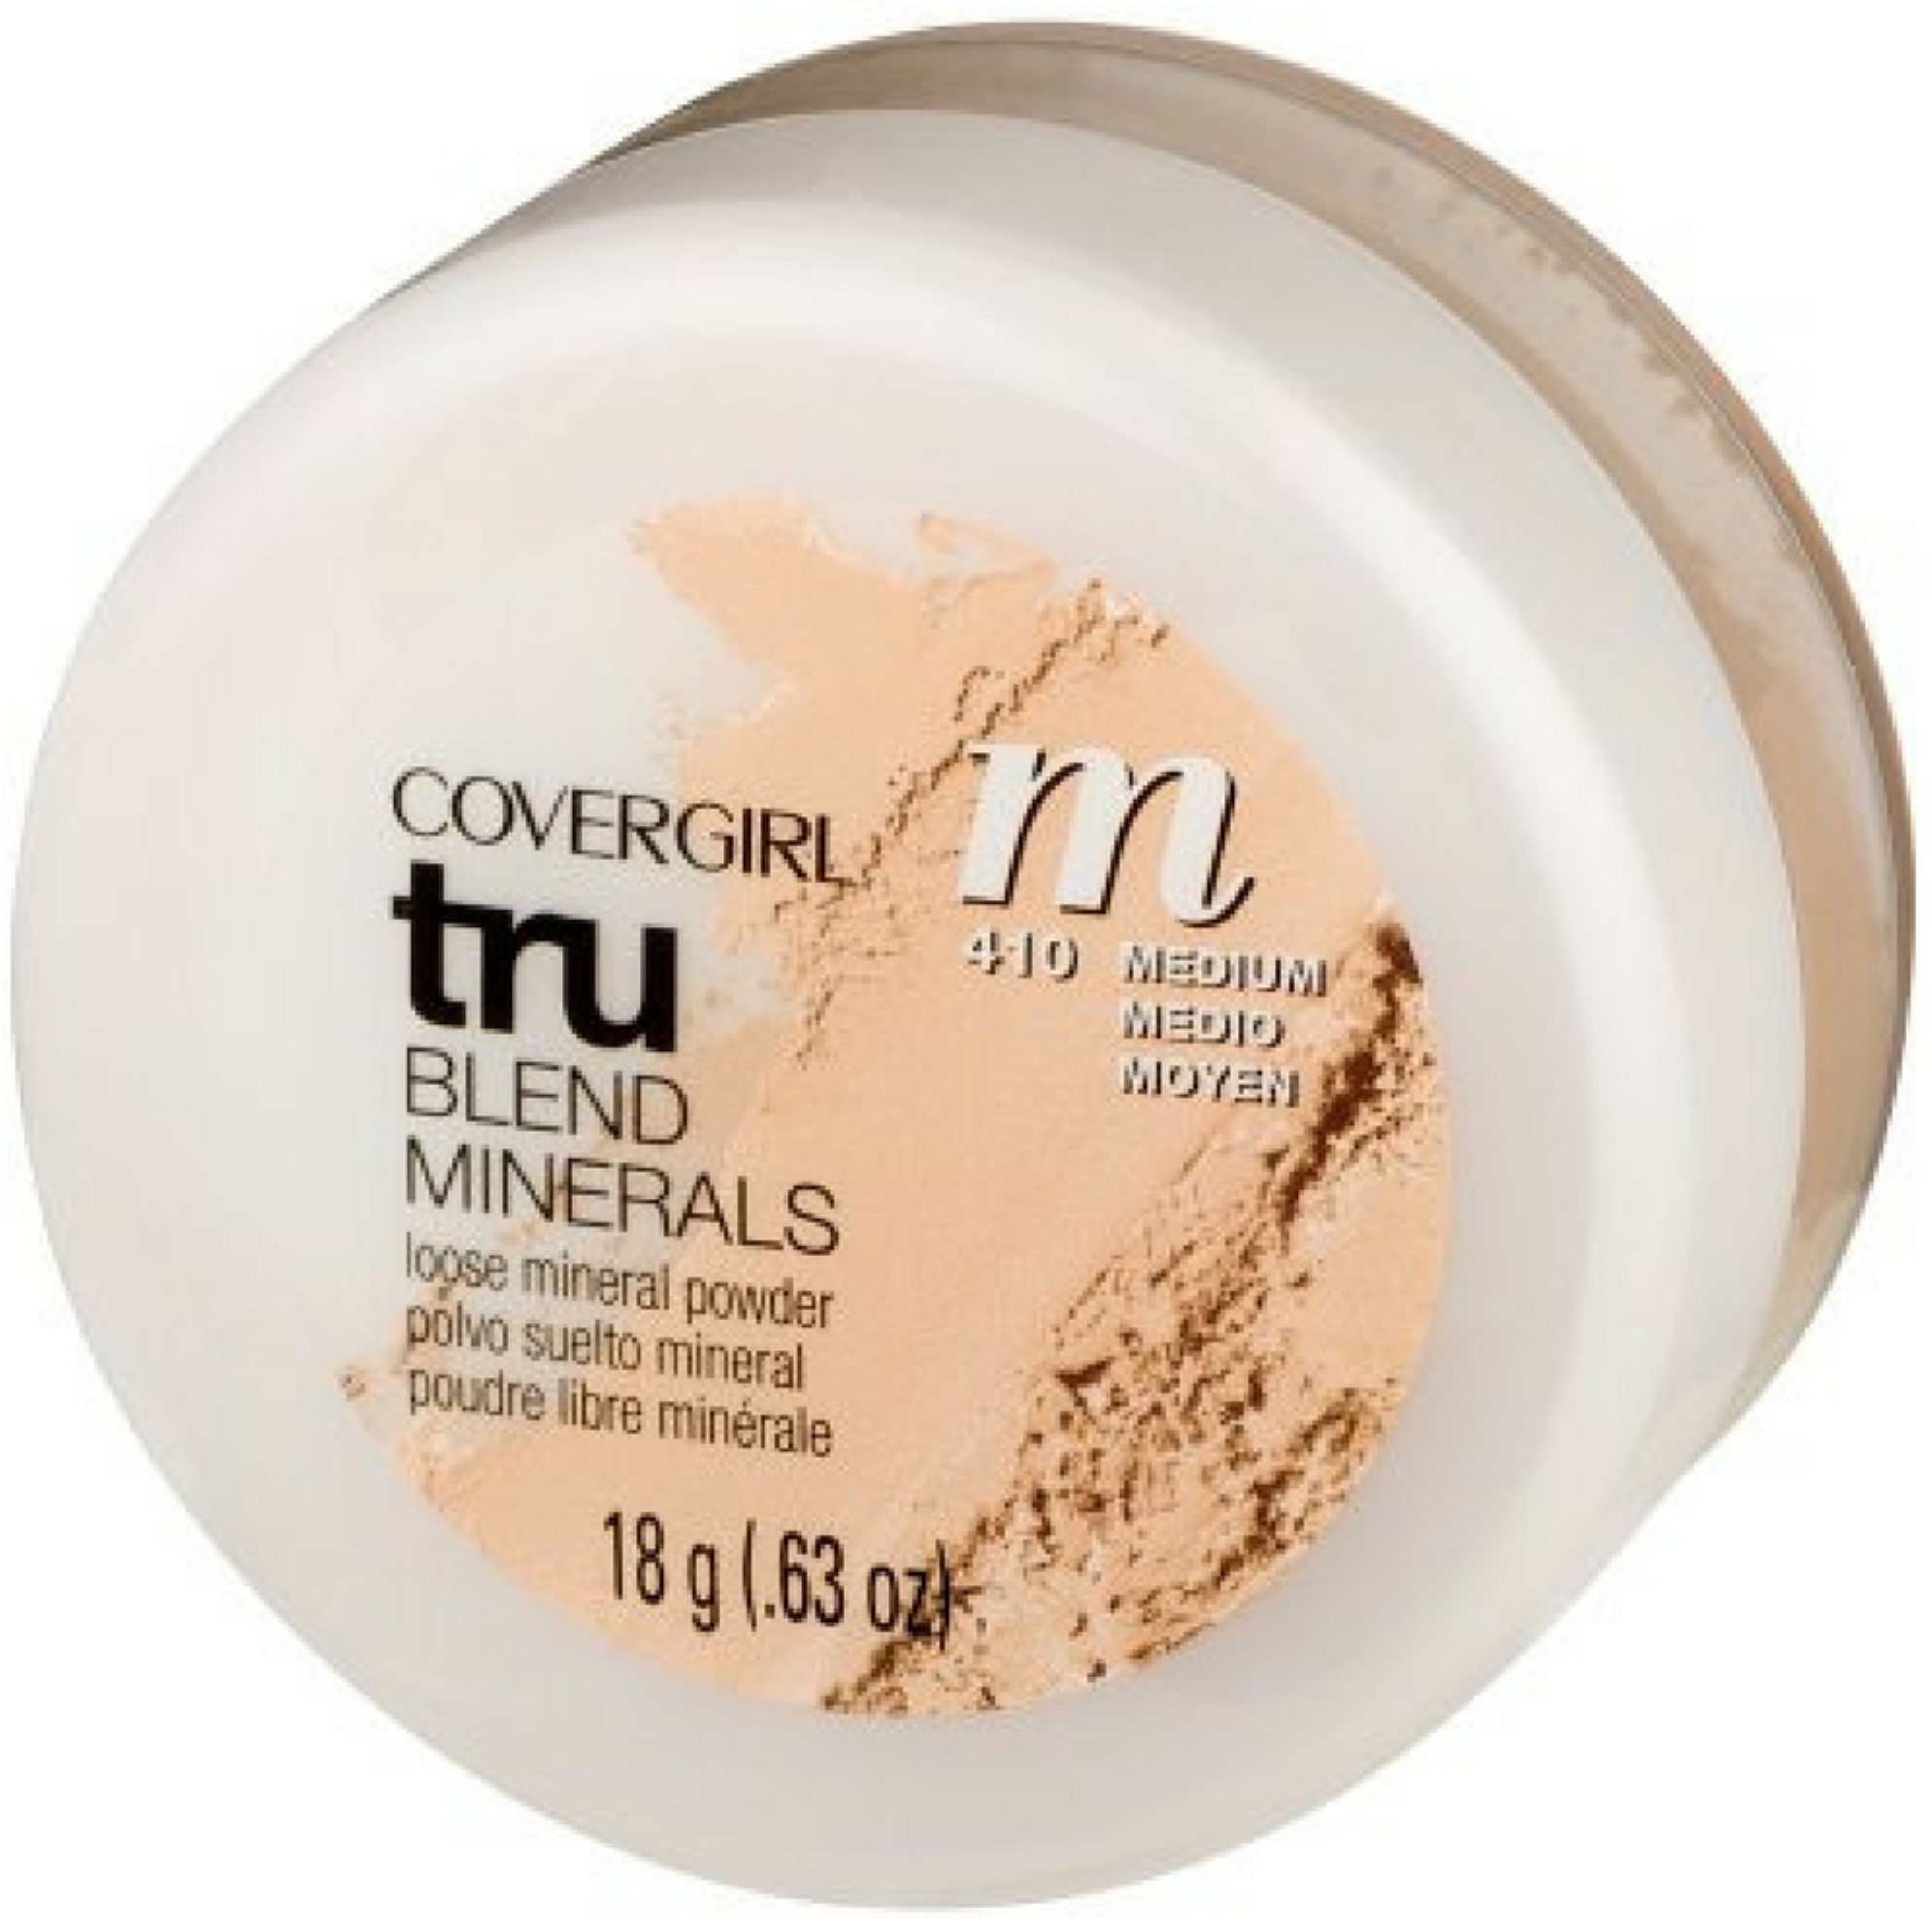 CoverGirl TruBlend Minerals Loose Powder, Medium [410] 0.63 oz (Pack of 2)